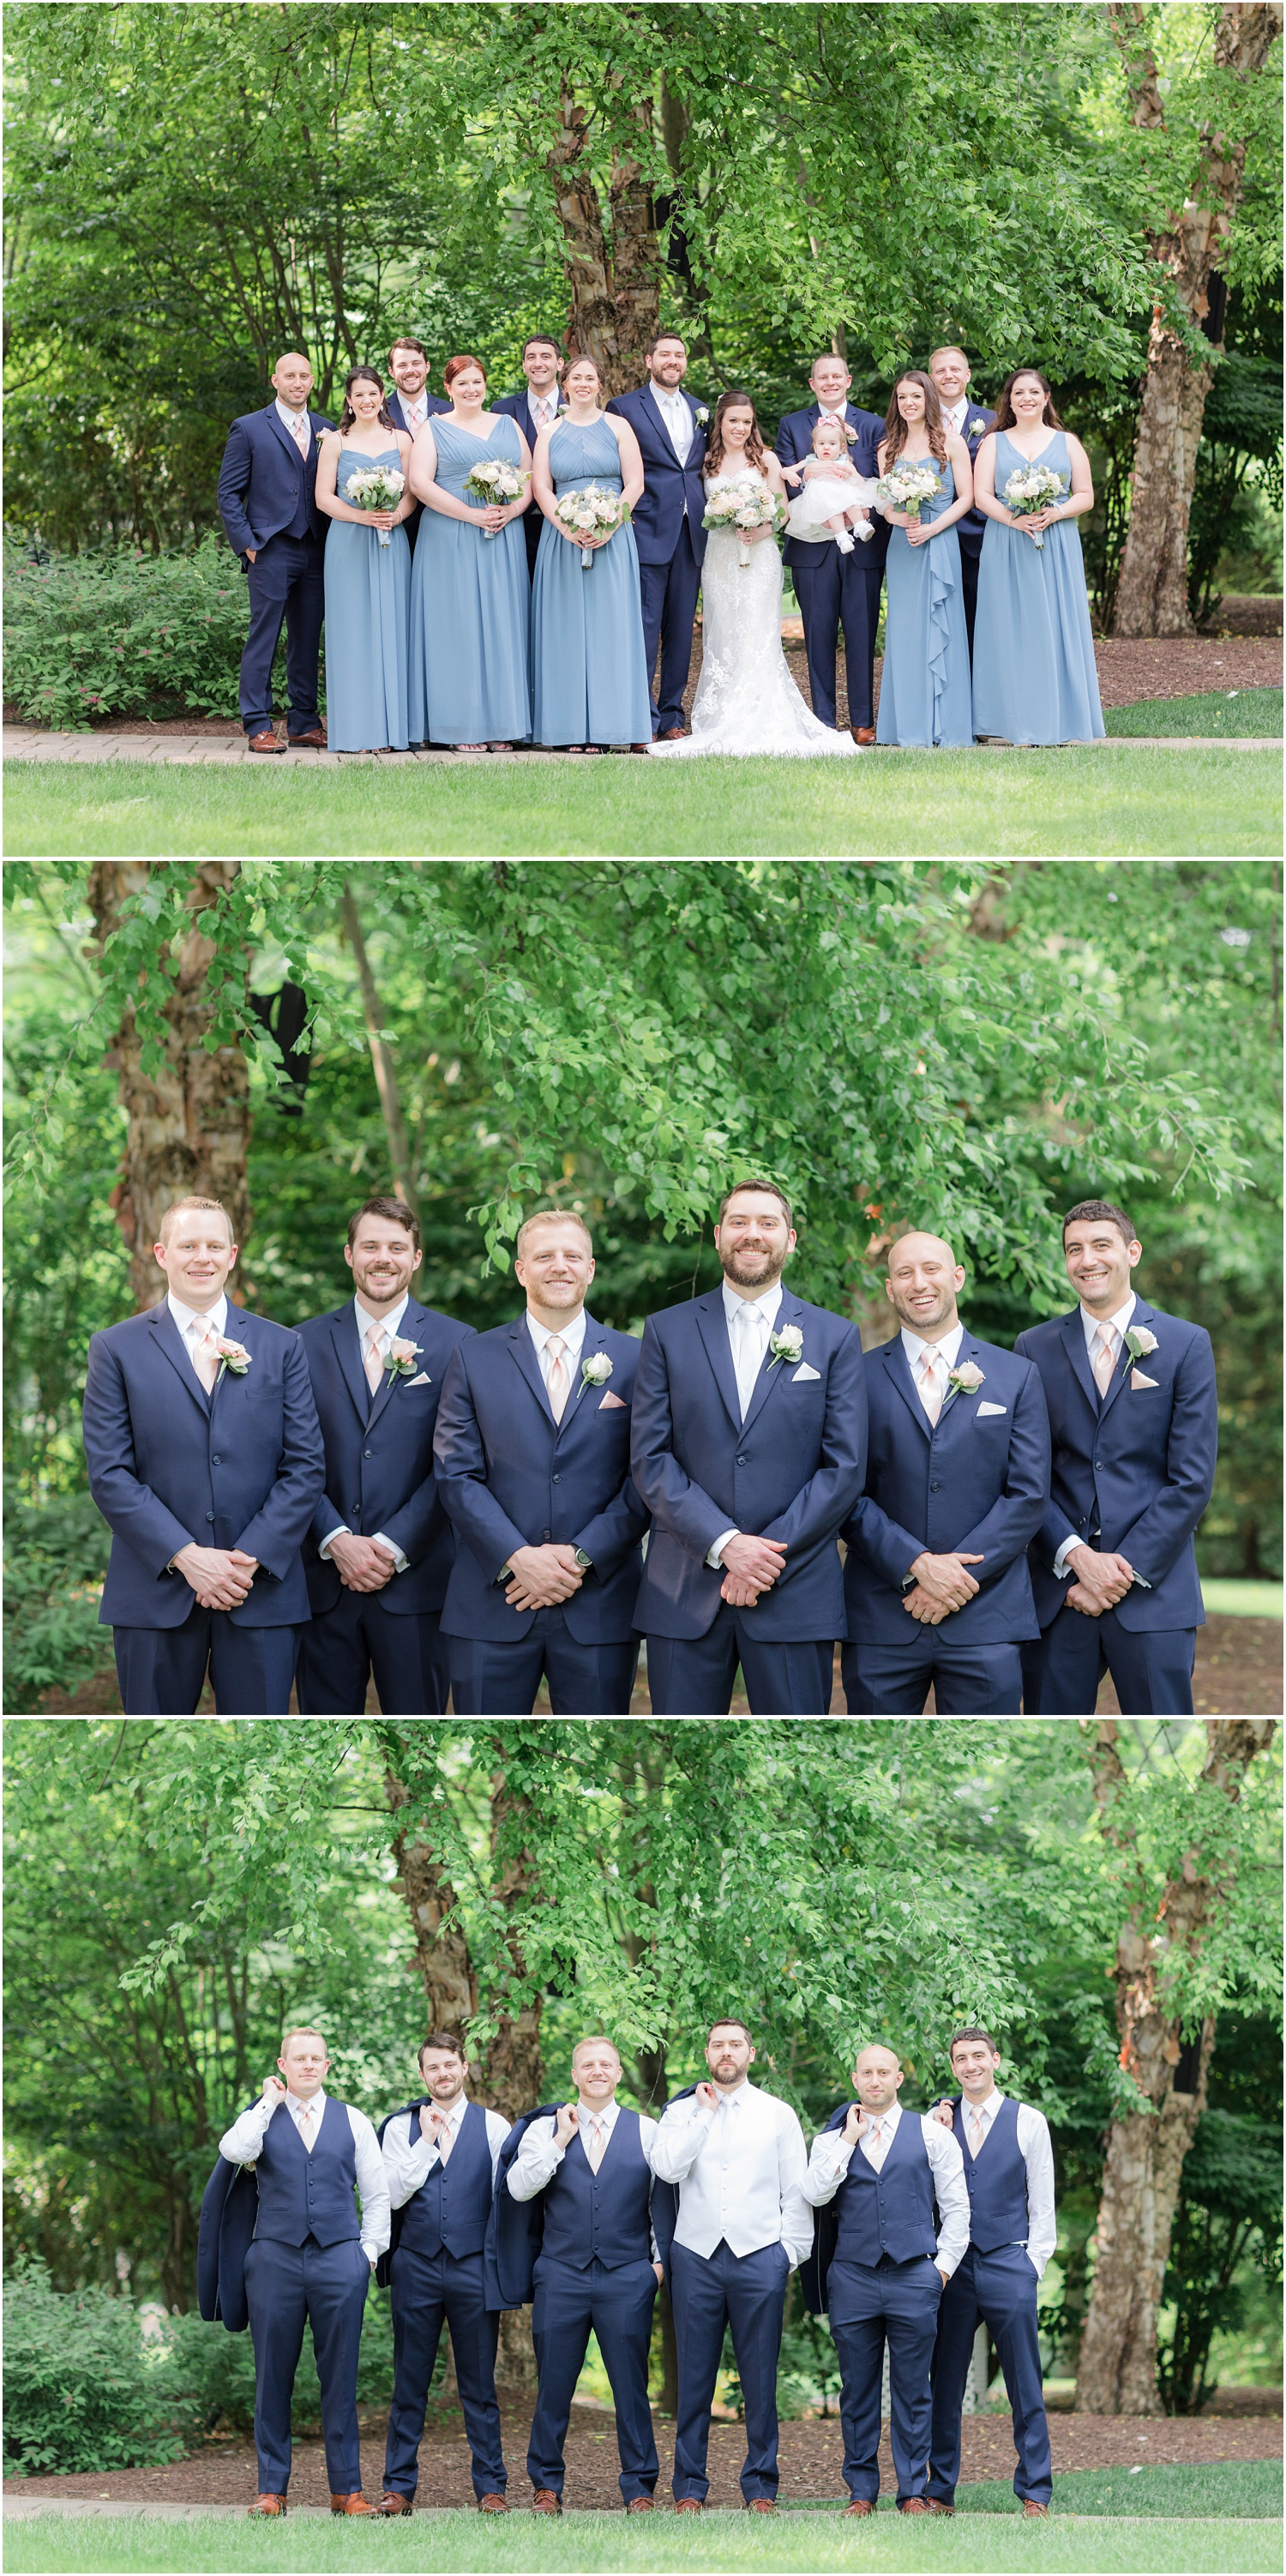 Bridal party photos at The Grain House in Basking Ridge, NJ.